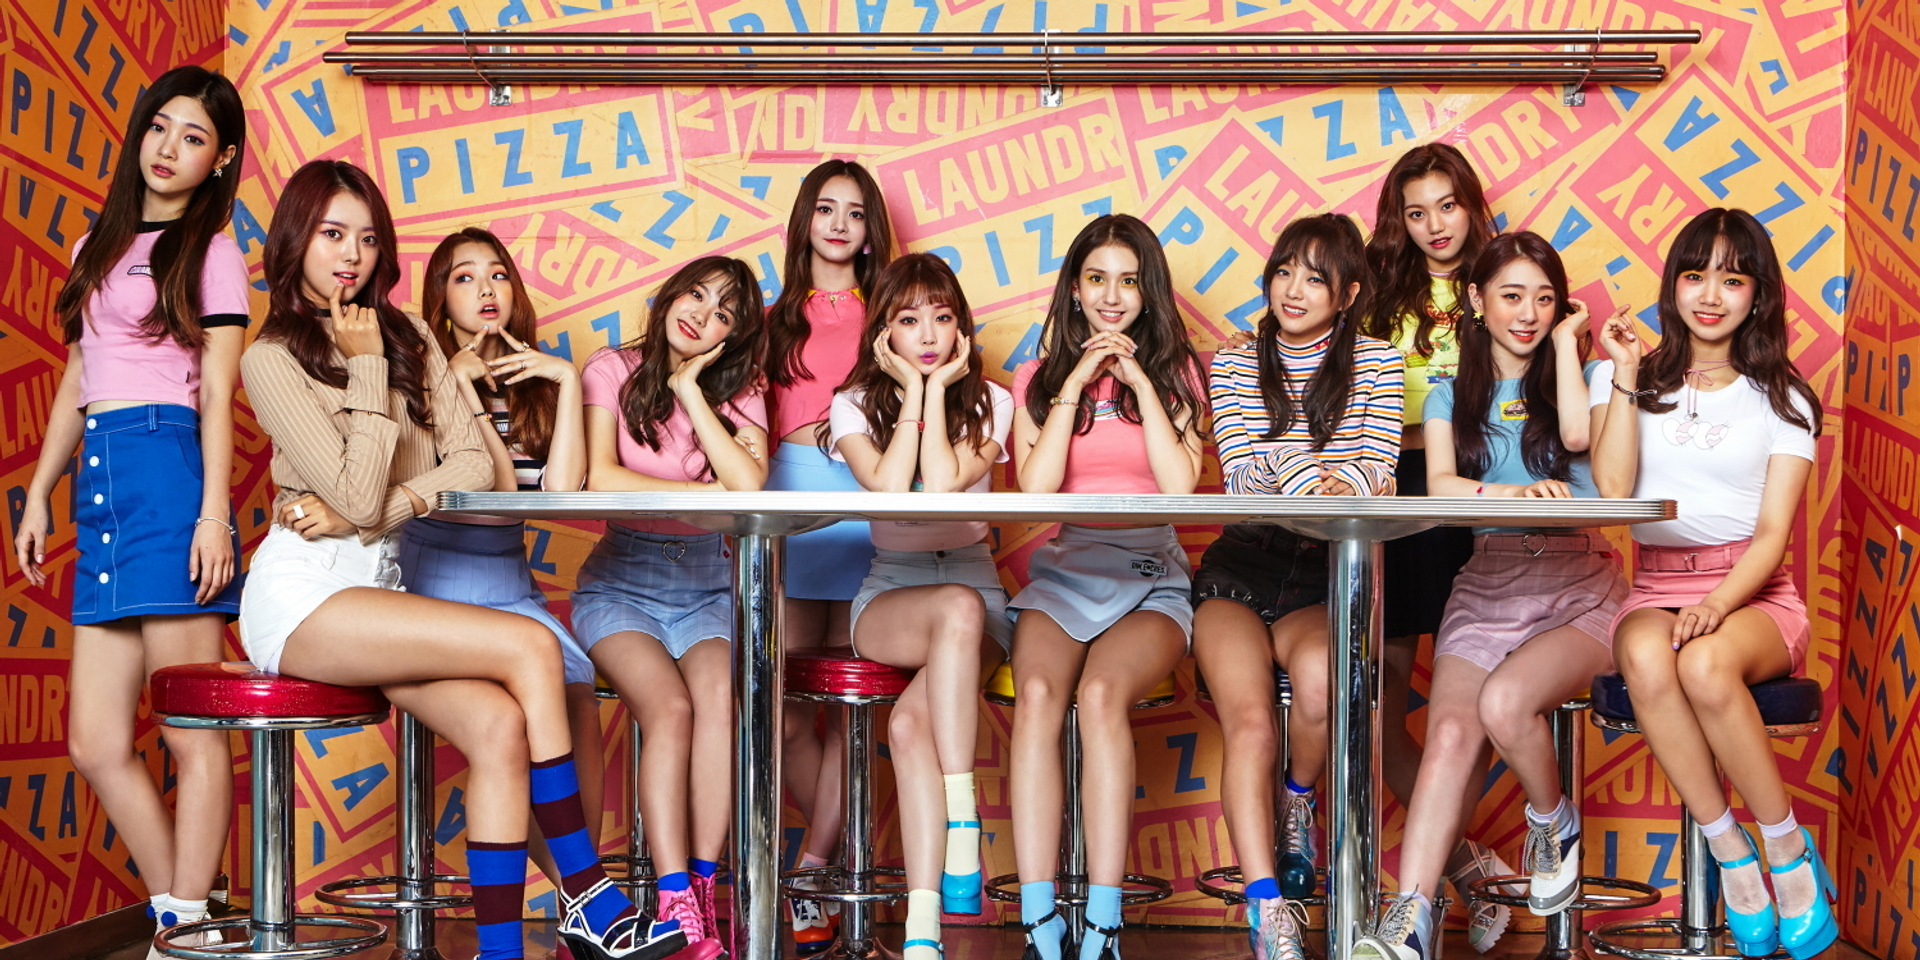 K-pop girl group I.O.I to reunite in October, Chung Ha and eight